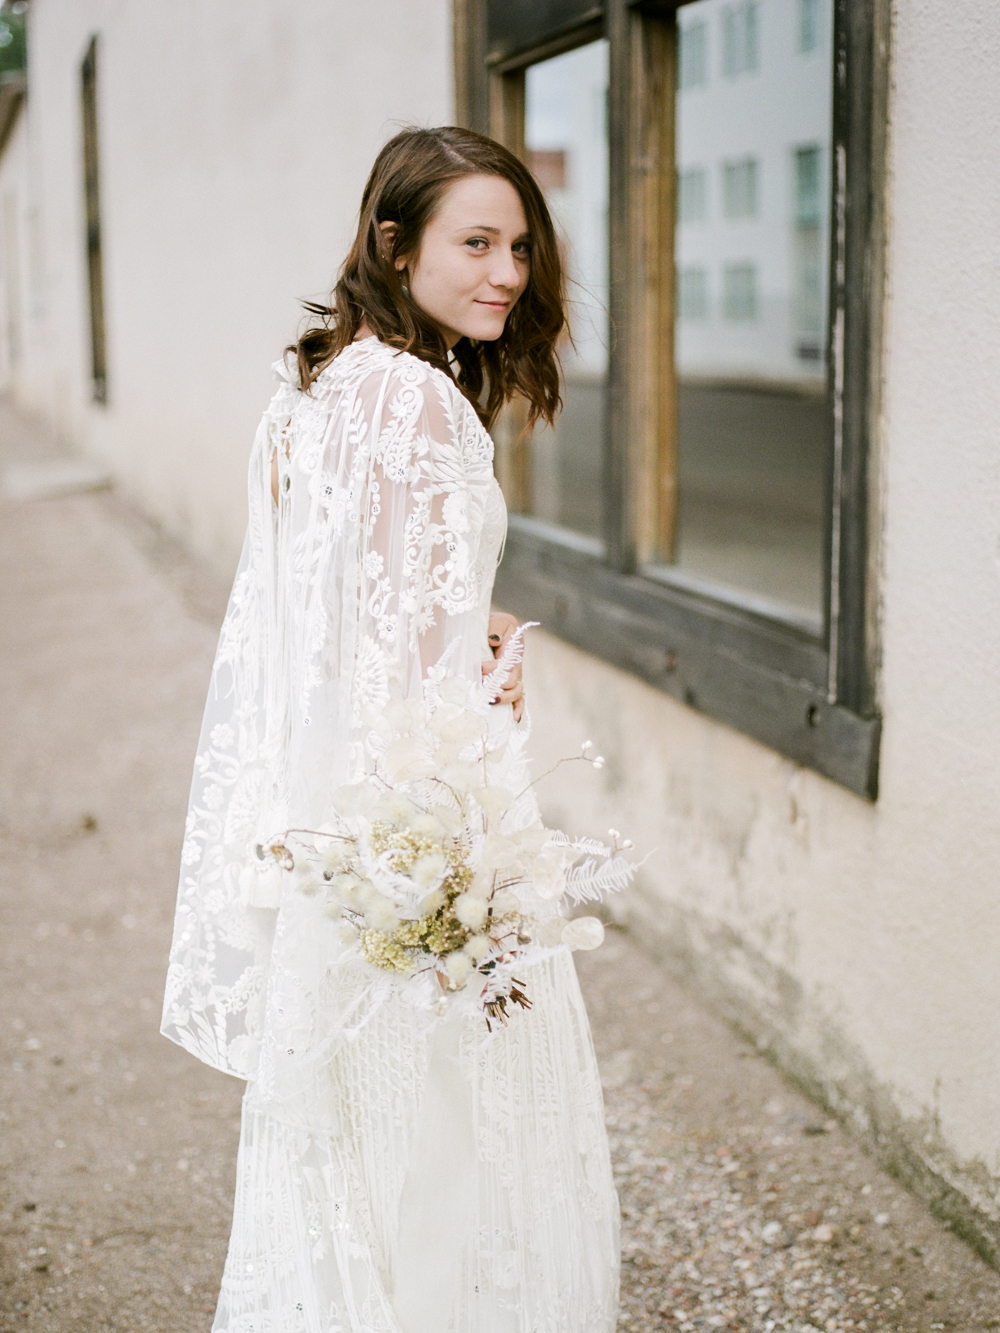 Marfa wedding photographer- destination wedding photographer-christine gosch - film photographer - elopement photographer-10.jpg